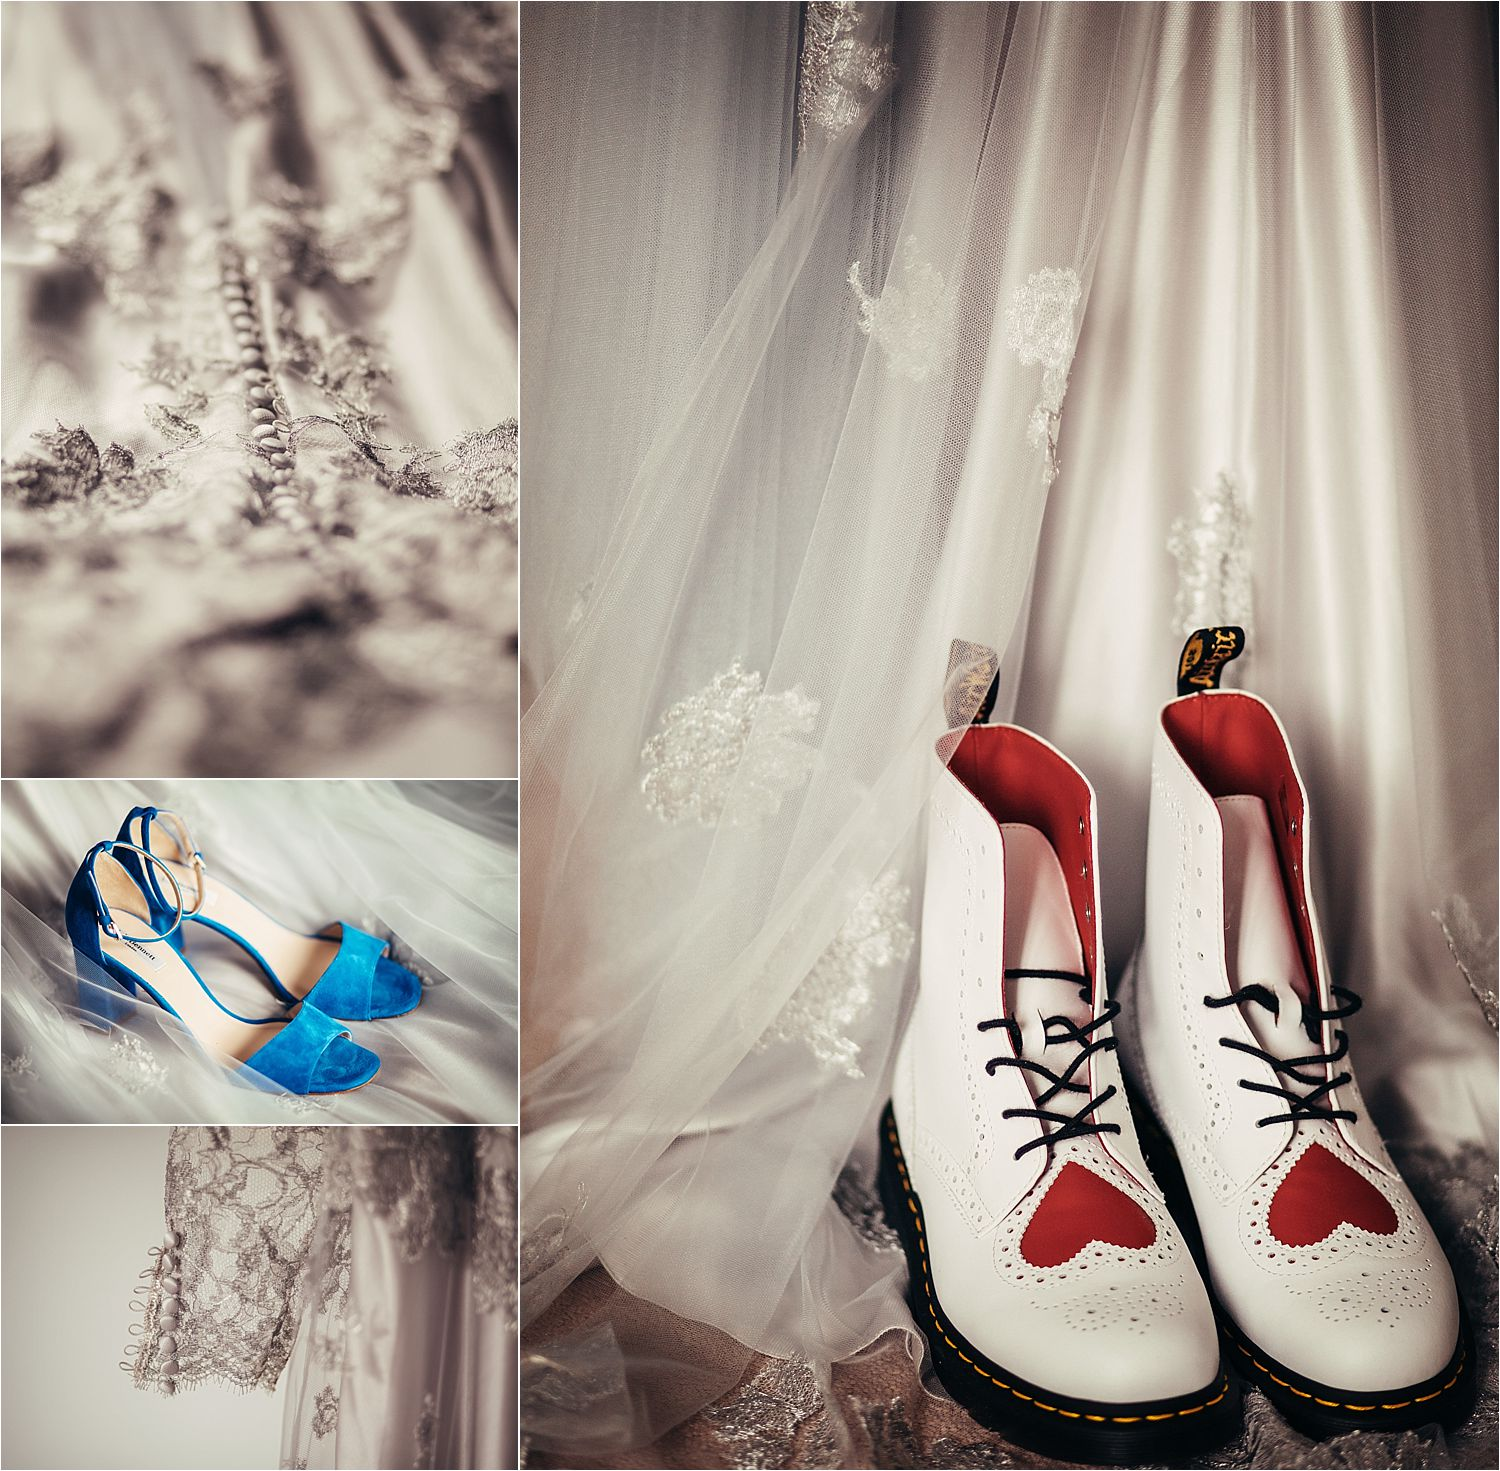 Shoes and wedding dress details for Tipi wedding. Dress by Soon Bride